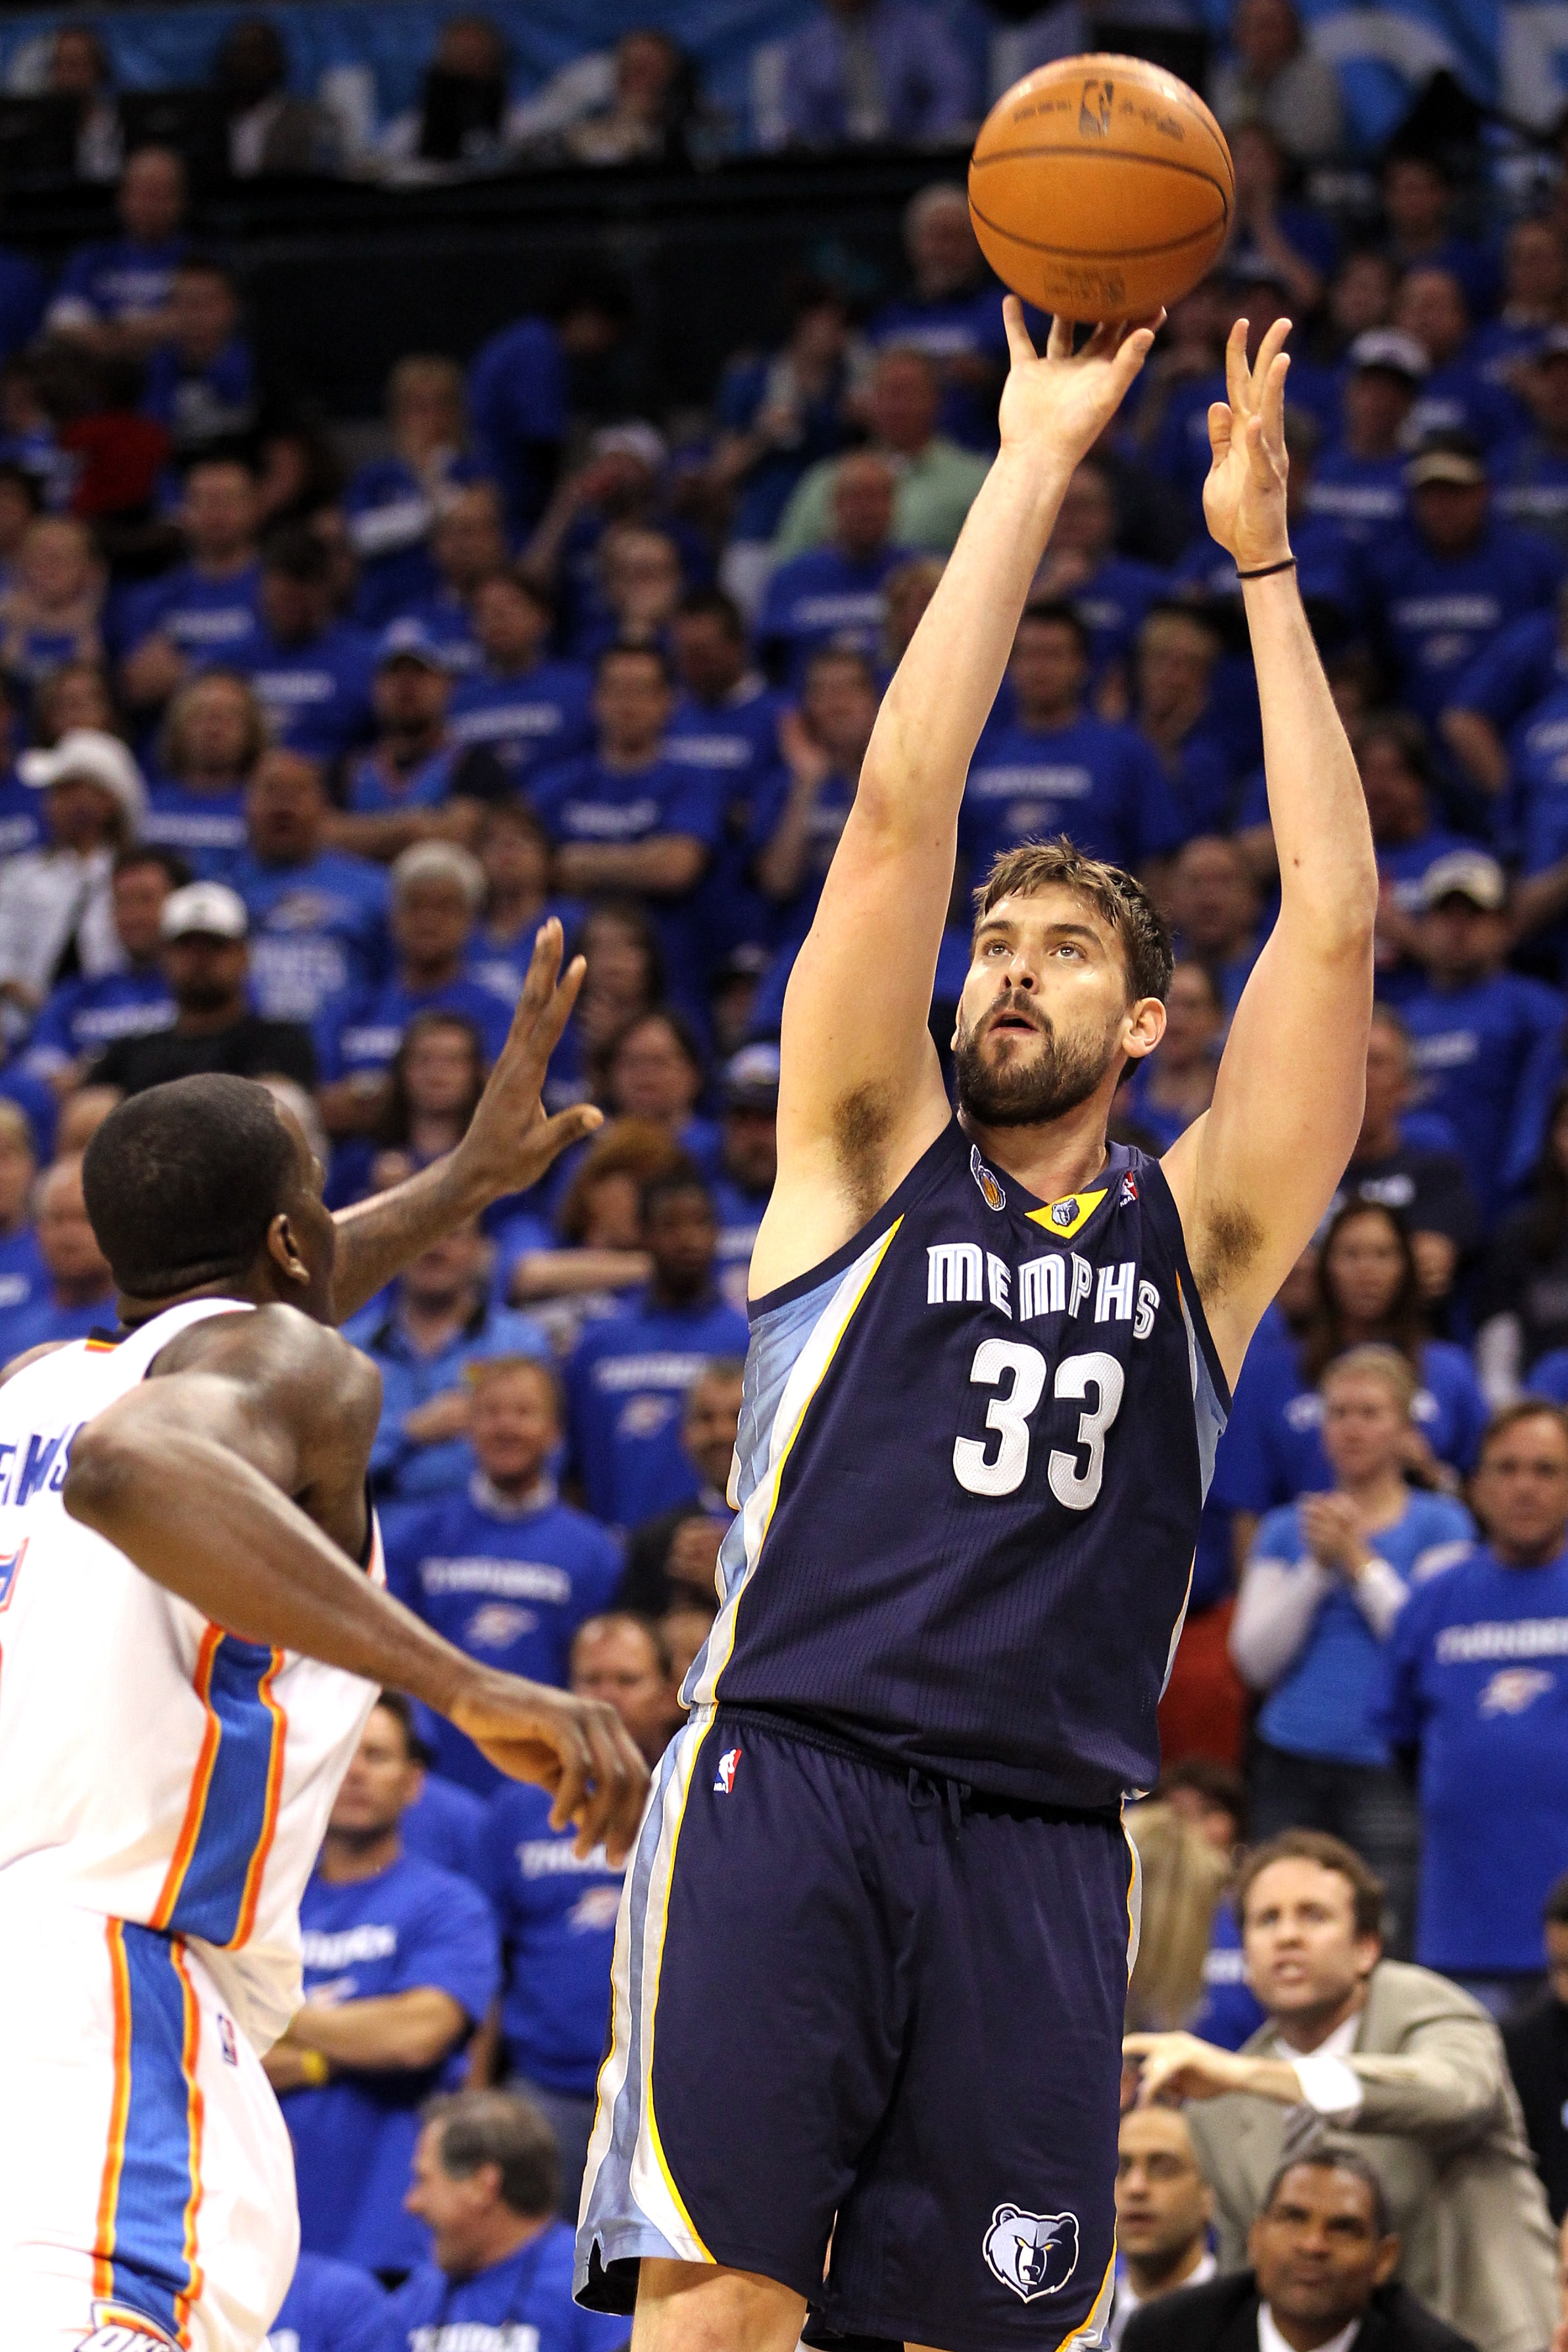 OKLAHOMA CITY, OK - MAY 03:  Marc Gasol #33 of the Memphis Grizzlies shoots a jumper over Kendrick Perkins #5 of the Oklahoma City Thunder in the first quarter in Game Two of the Western Conference Semifinals in the 2011 NBA Playoffs on May 3, 2011 at Okl